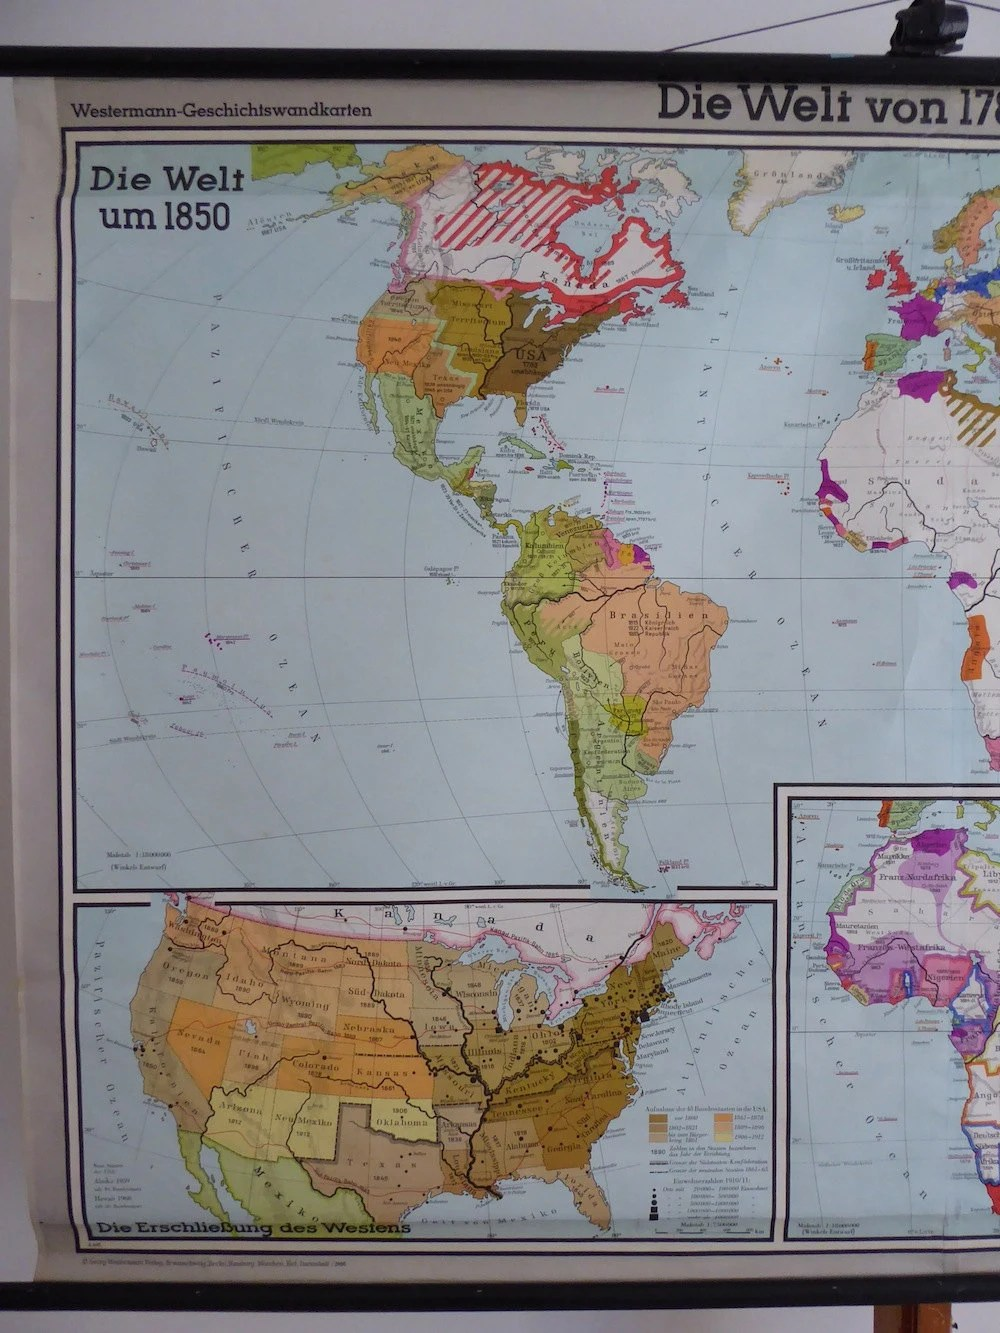 Very Goods   Large Original Vintage World Map The World from 1783 1914